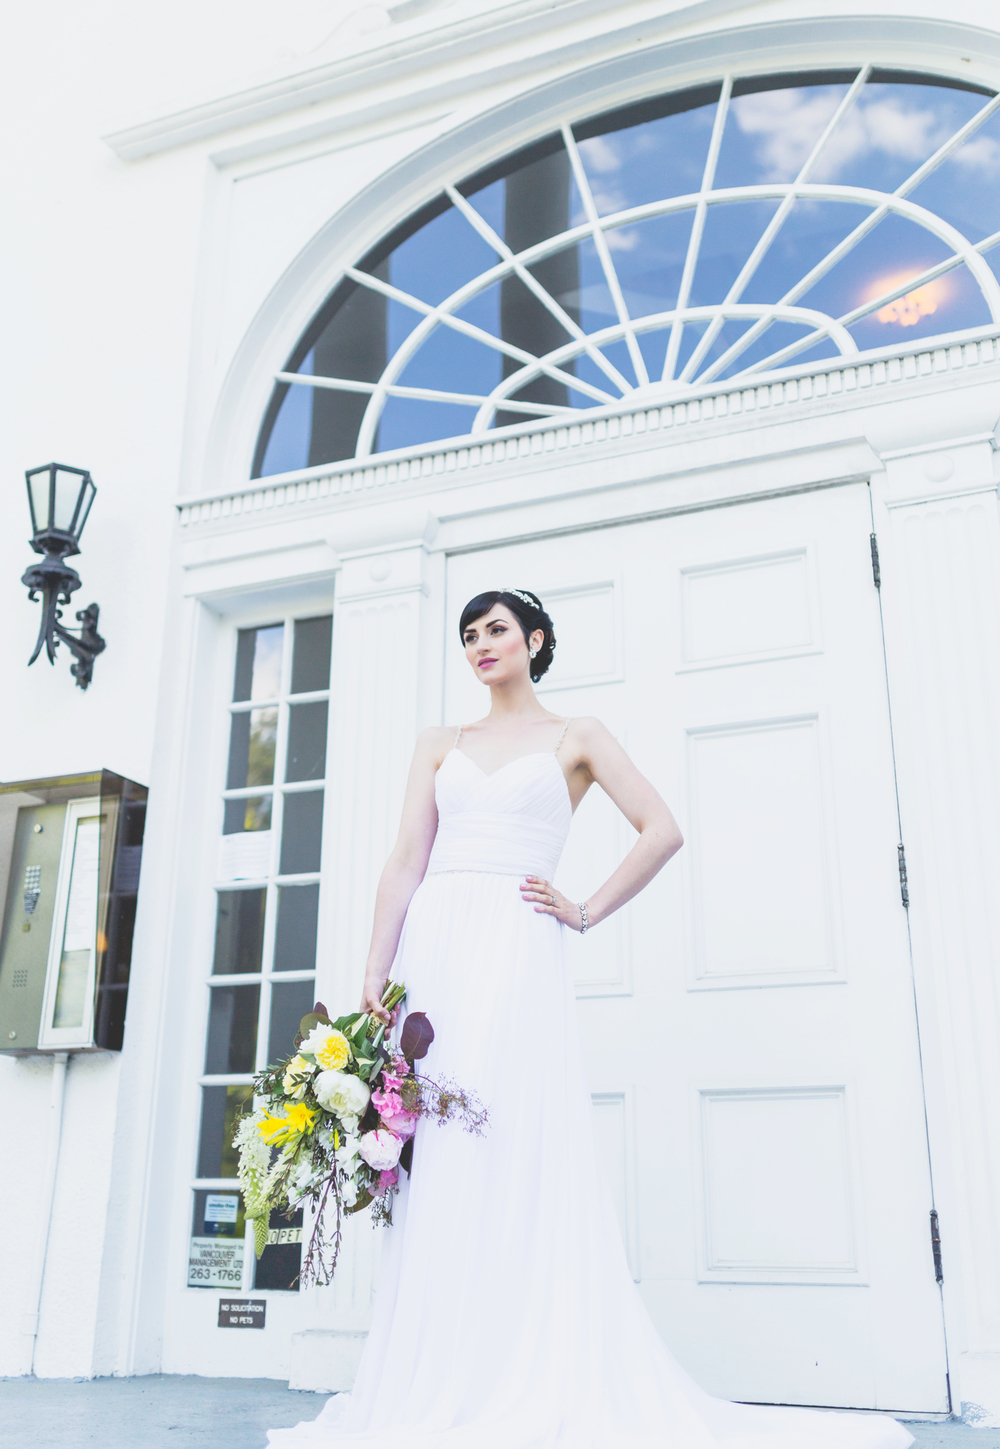 IMG_3309-VANCOUVER-BRIDAL-EDITORIAL-JENNIFER-PICARD-PHOTOGRAPHY.jpg